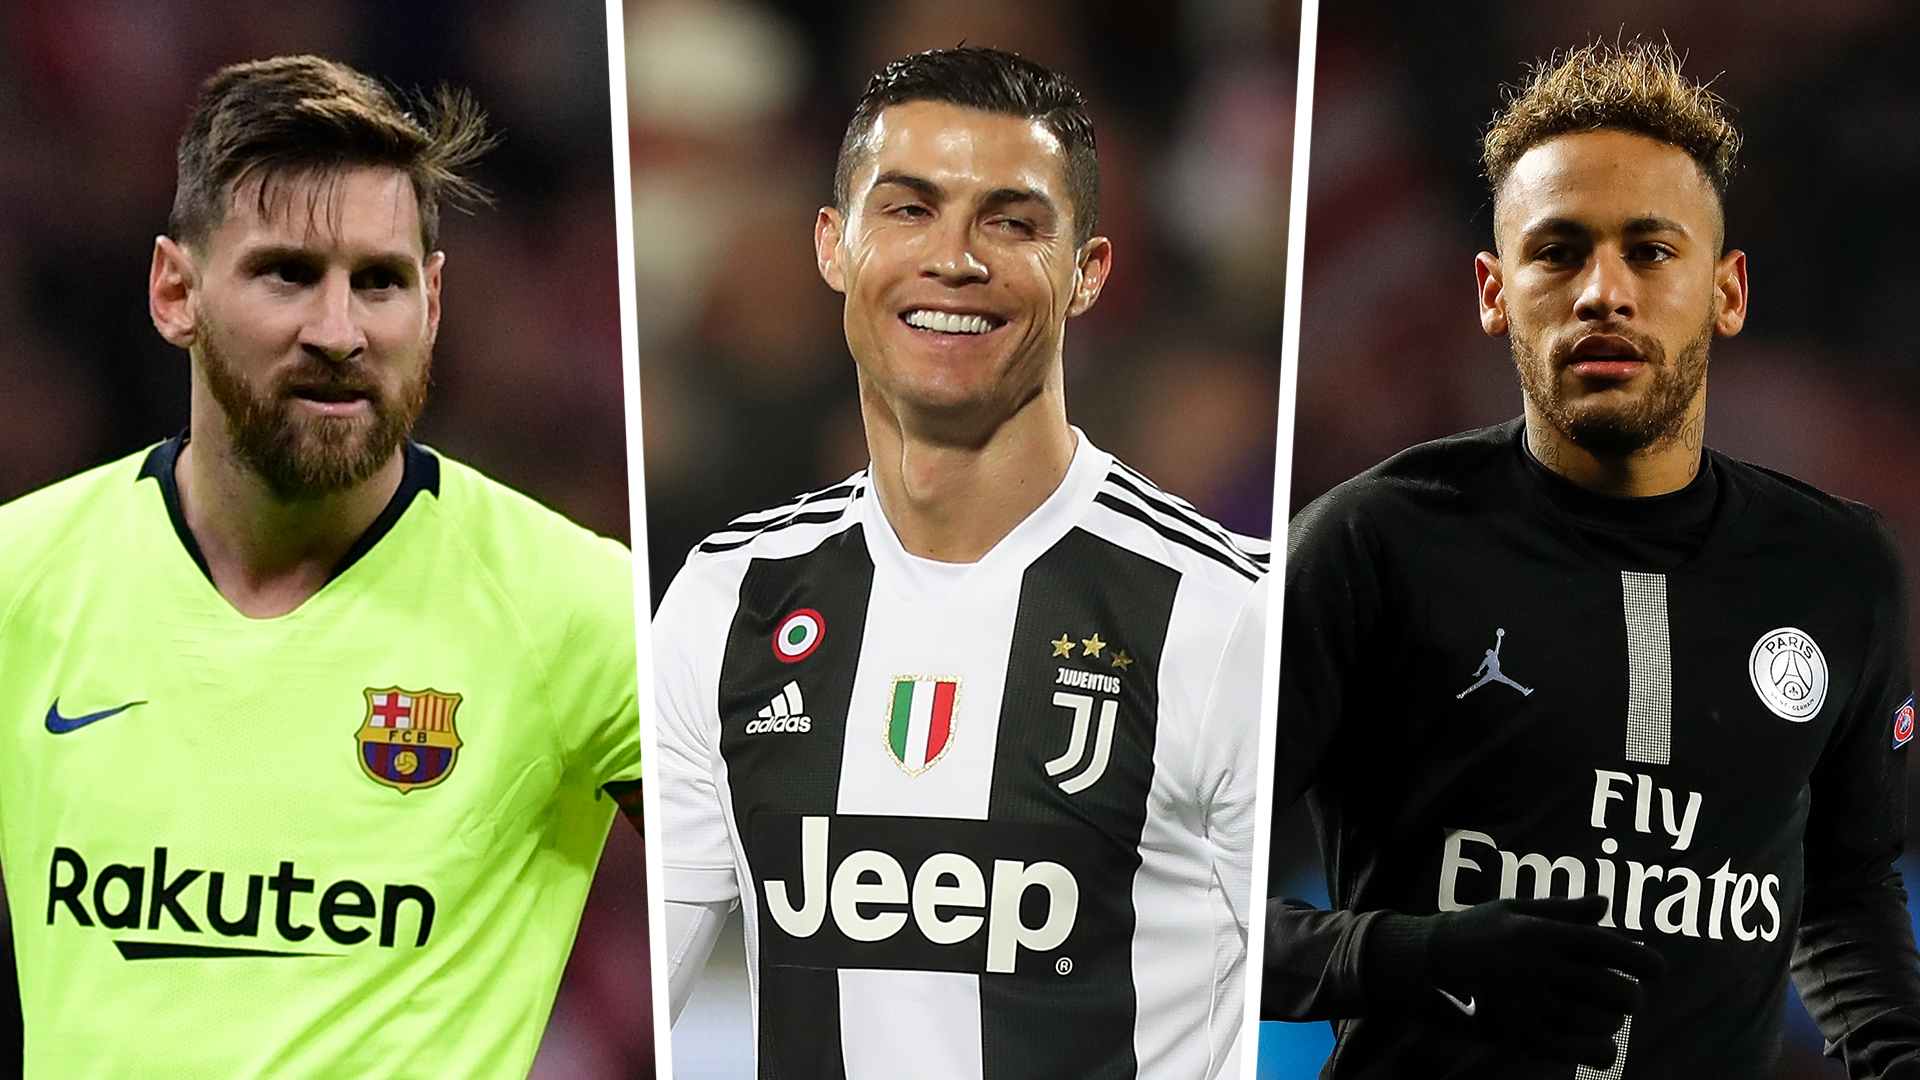 FIFA player ratings history: How Ronaldo, Messi and Neymar's stats have changed